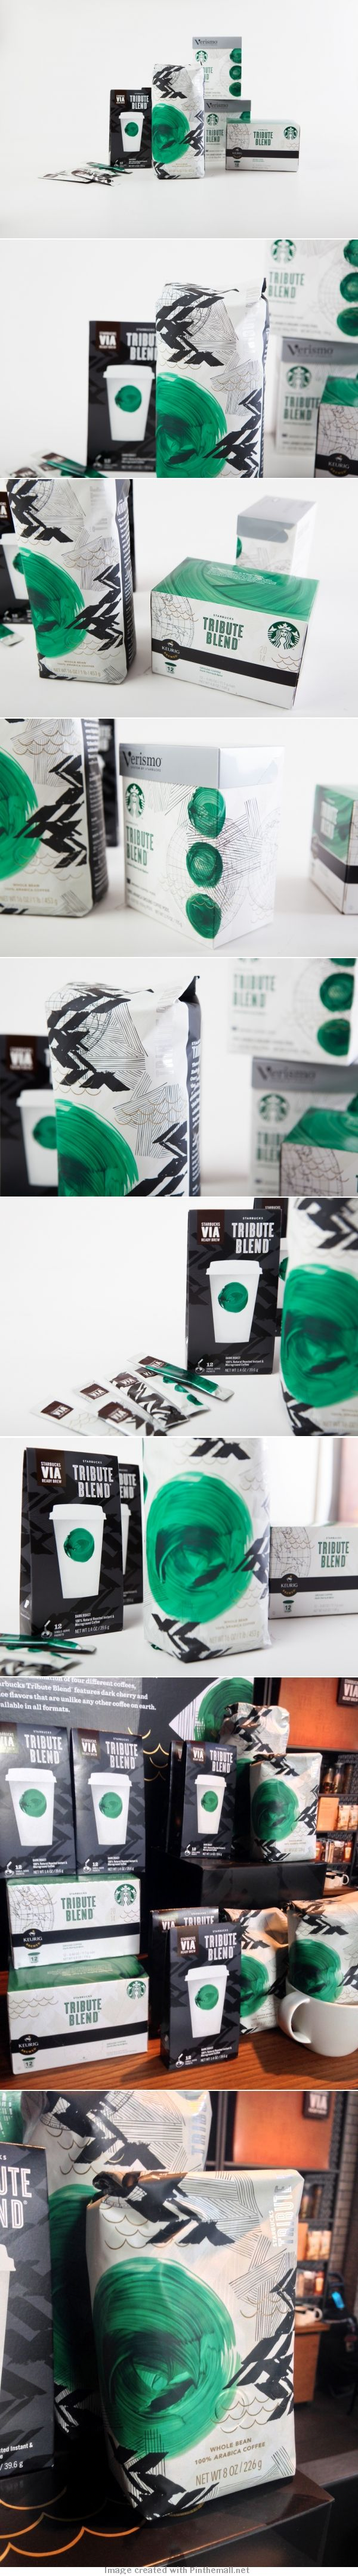 #Starbucks Tribute Blend. I'd planed to pin this fab #packaging but @MiaGrphx beat me to it : ) PD